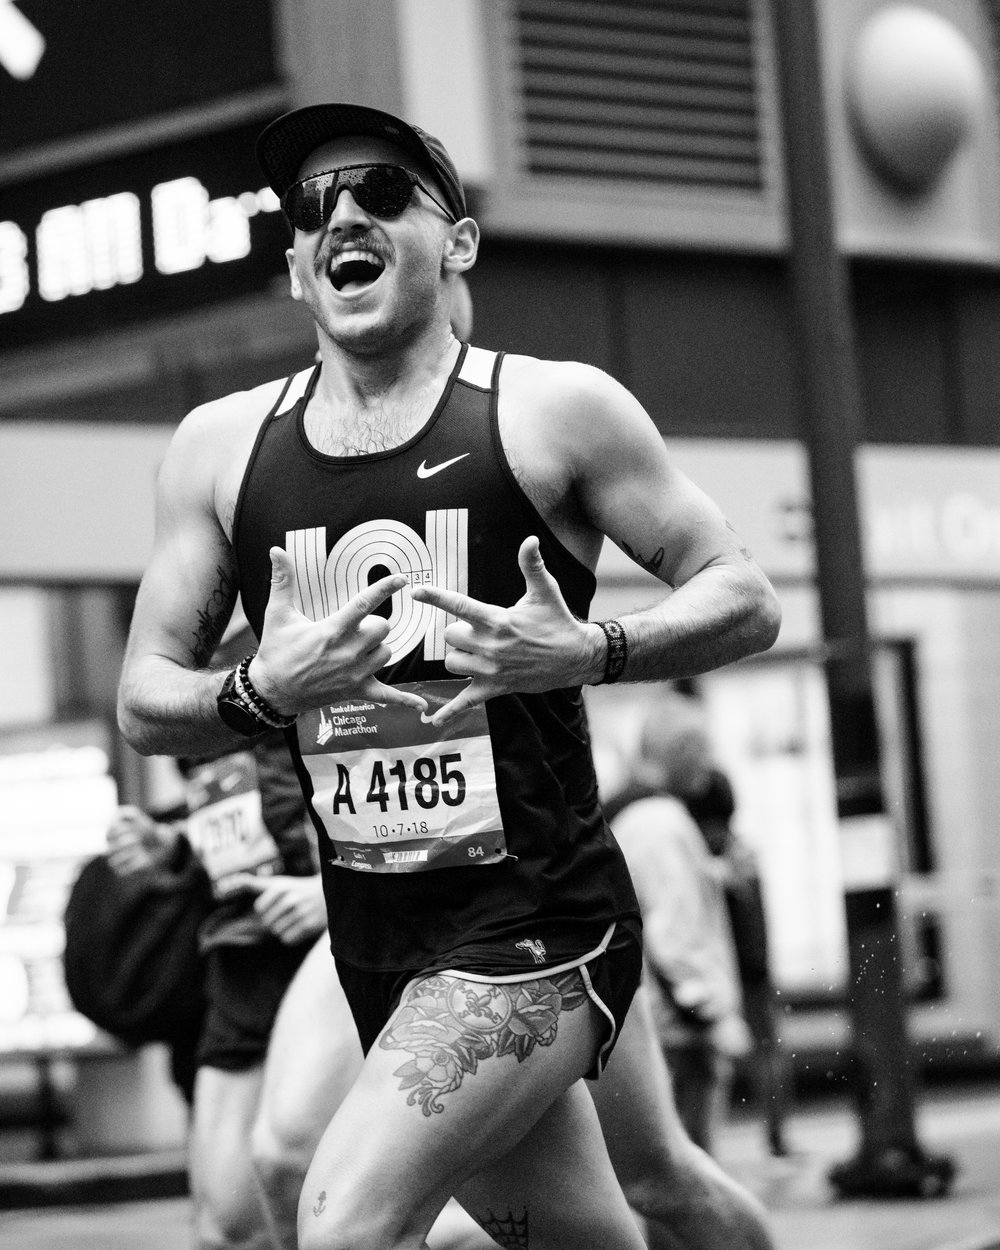 MATTHEW LUKE MEYER - Matthew Meyer is an RRCA certified running coach for Streets 101. Matthew is also a Certified Personal Trainer, Group Fitness Instructor and Fitness Nutrition Specialist, teaching a wide range of classes across NYC, including Bread & Butter at Custom Performance. He coaches clients from one mile up through ultramarathon. Matthew is an active part of the NYC running scene, both racing and cheering on his fellow athletes. Matthew is thrilled to be a part of Streets 101, working with Greg and Andy to help build this community and empower our athletes to reach their goals.